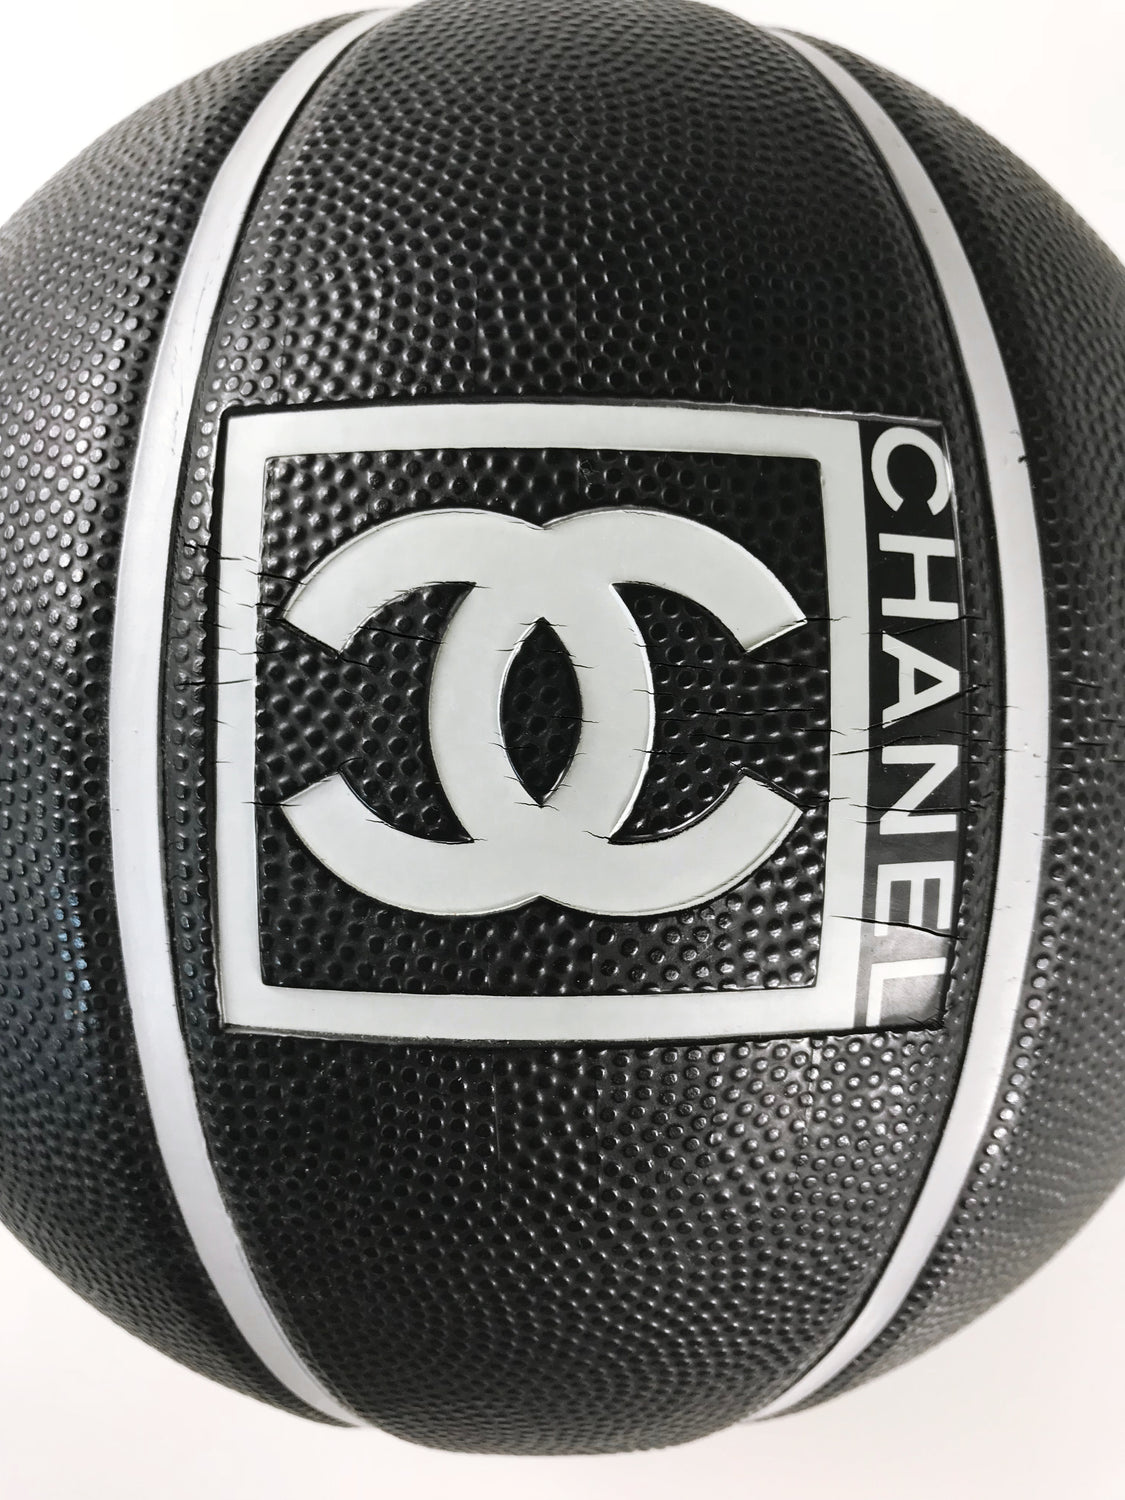 Fruit Vintage rare Chanel 2004 Basketball. This Chanel sport logo ball by Karl Lagerfeld is an important Chanel collectors accessory. It features a large Chanel logo and text on both sides in high contrast grey/black tone. Perfect for use as a home decor feature, this ball is piece of Chanel history!